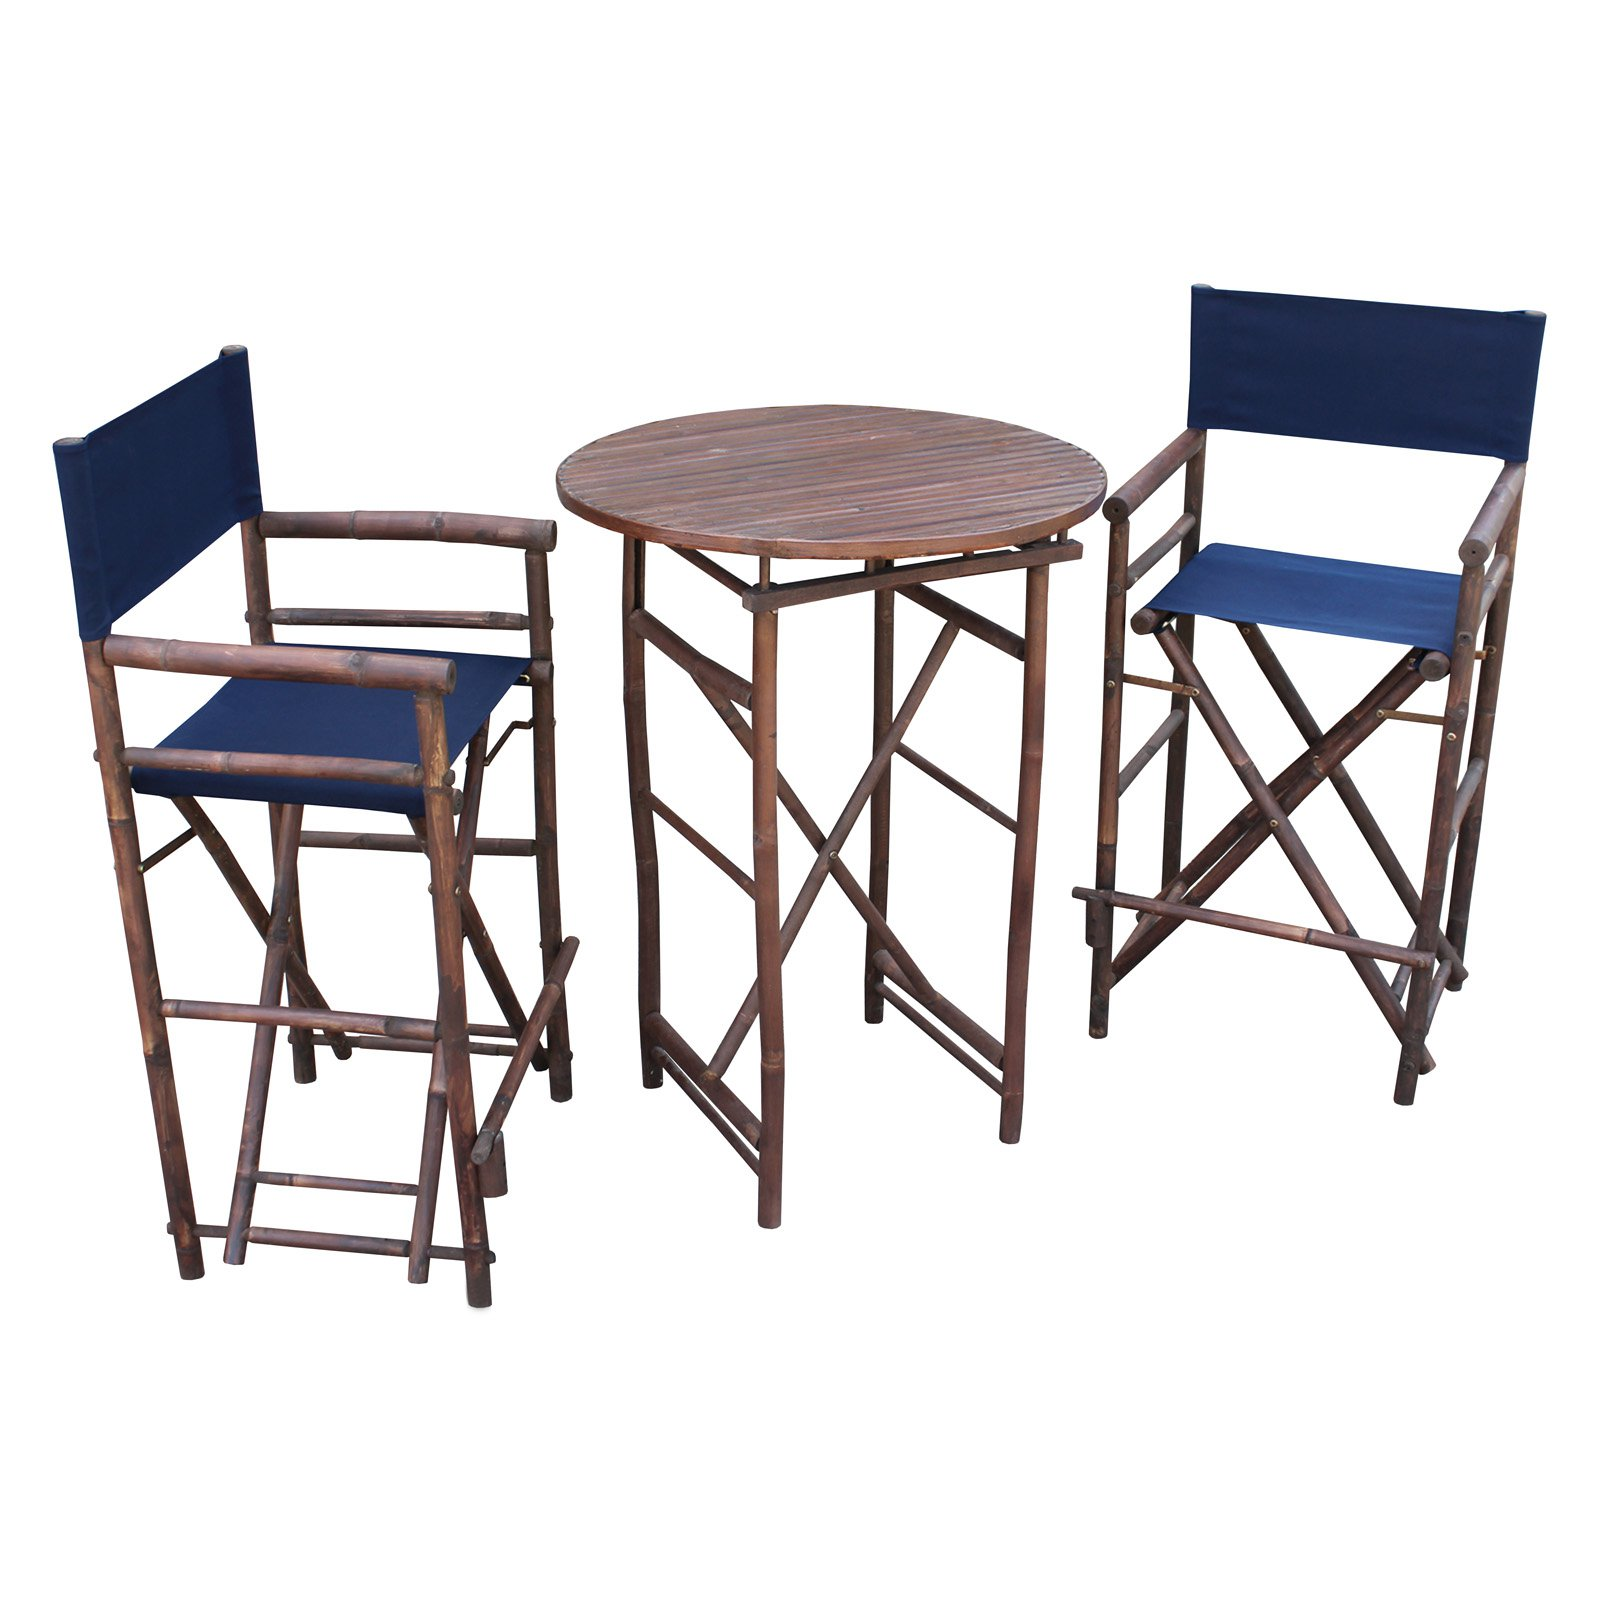 Zew Hand Crafted 3 Piece Round Folding Bamboo Bar Height Patio Dining Set